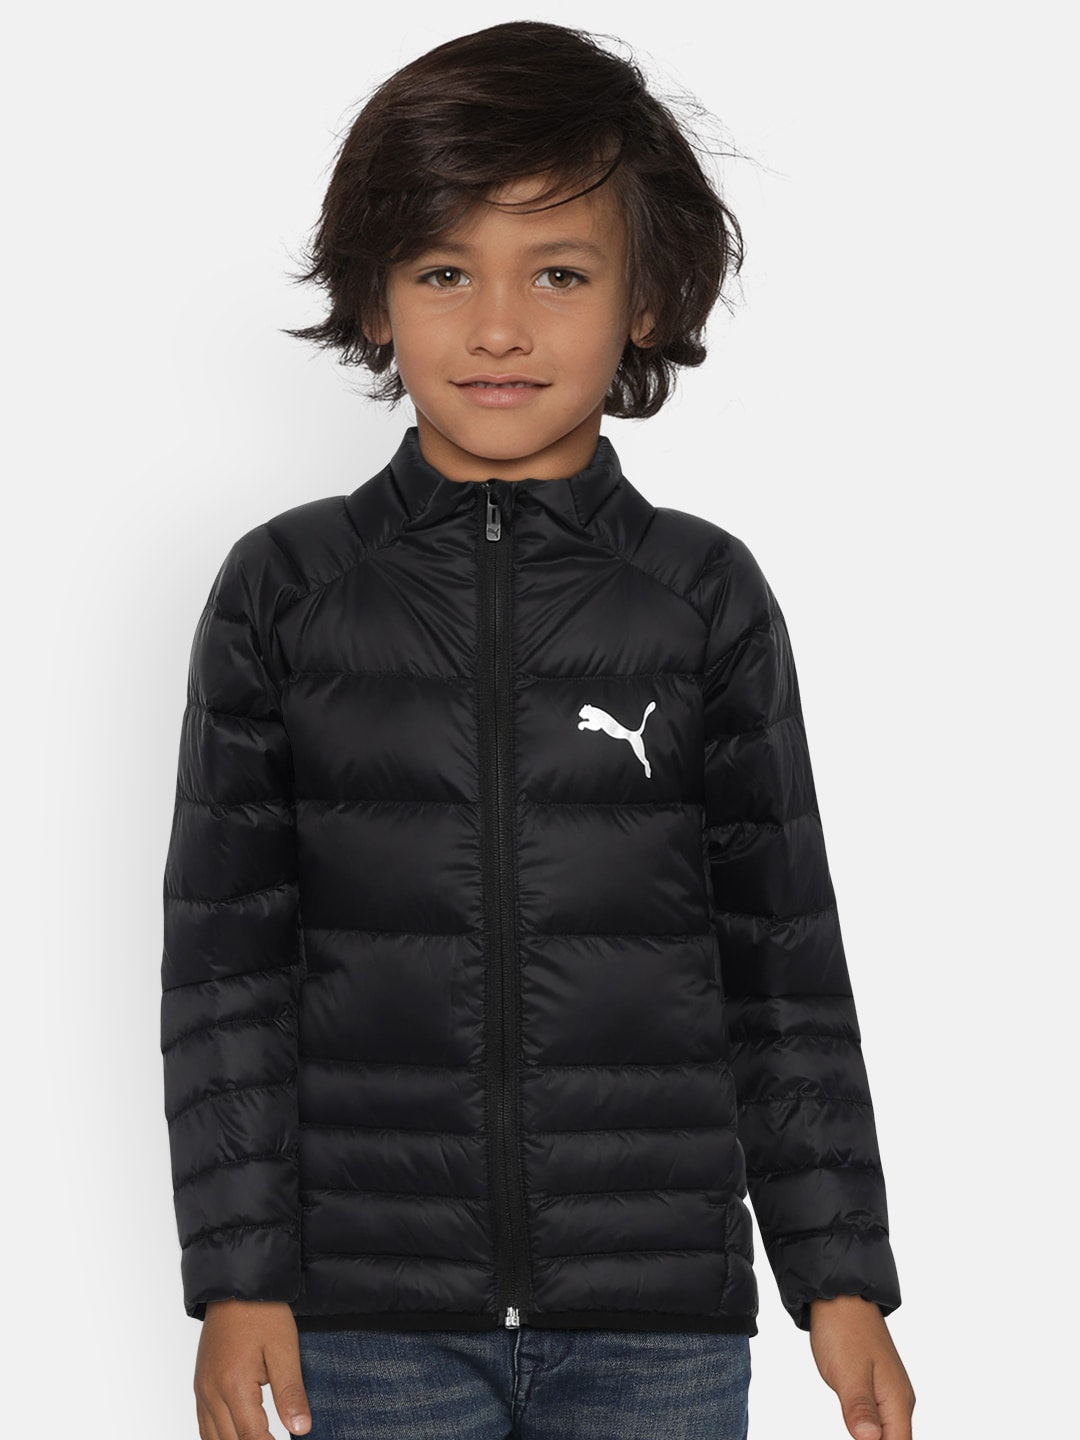 67edf7a0c Kids Jackets - Buy Jacket for Kids Online in India at Myntra